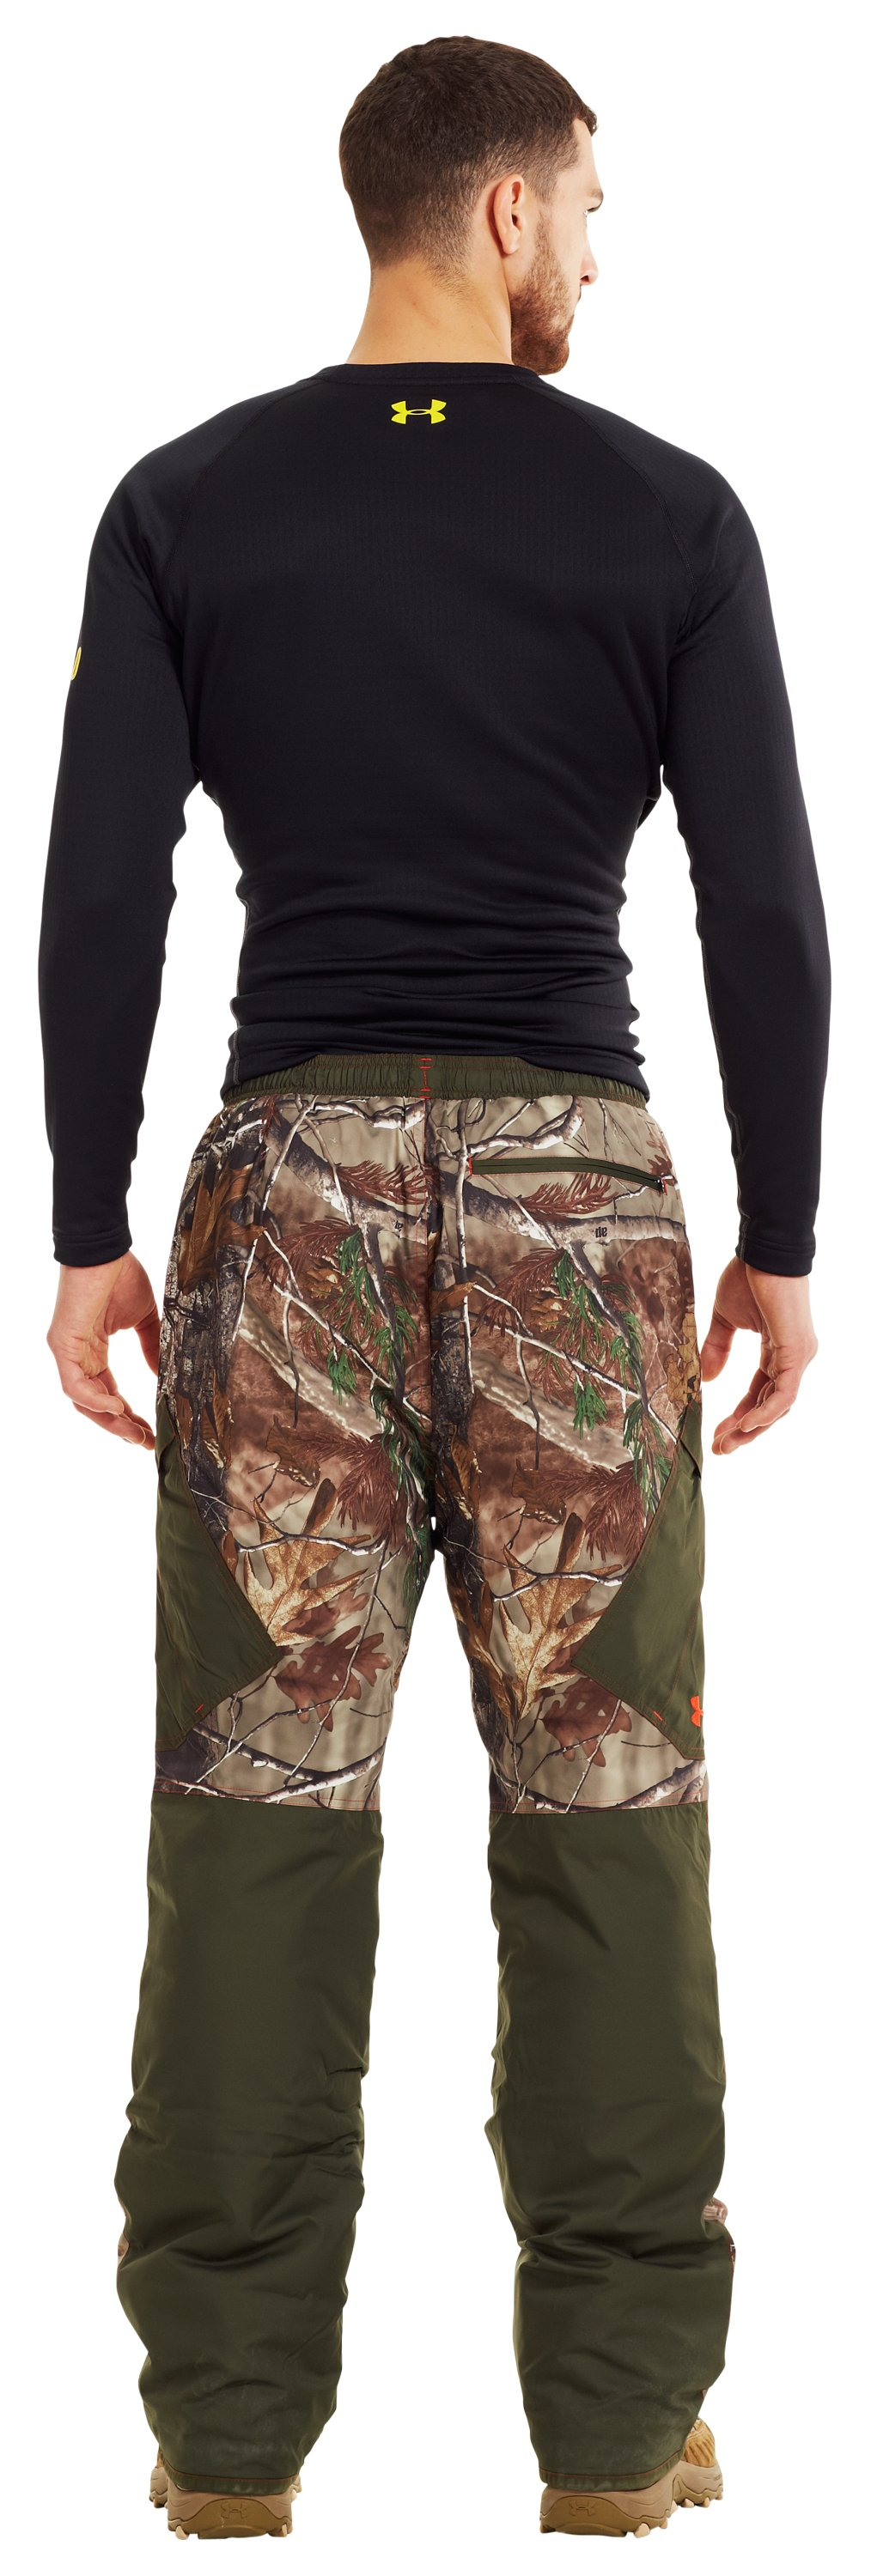 Men's ColdGear® Infrared Ridge Reaper® Primaloft® Pants, REALTREE AP-XTRA, Back